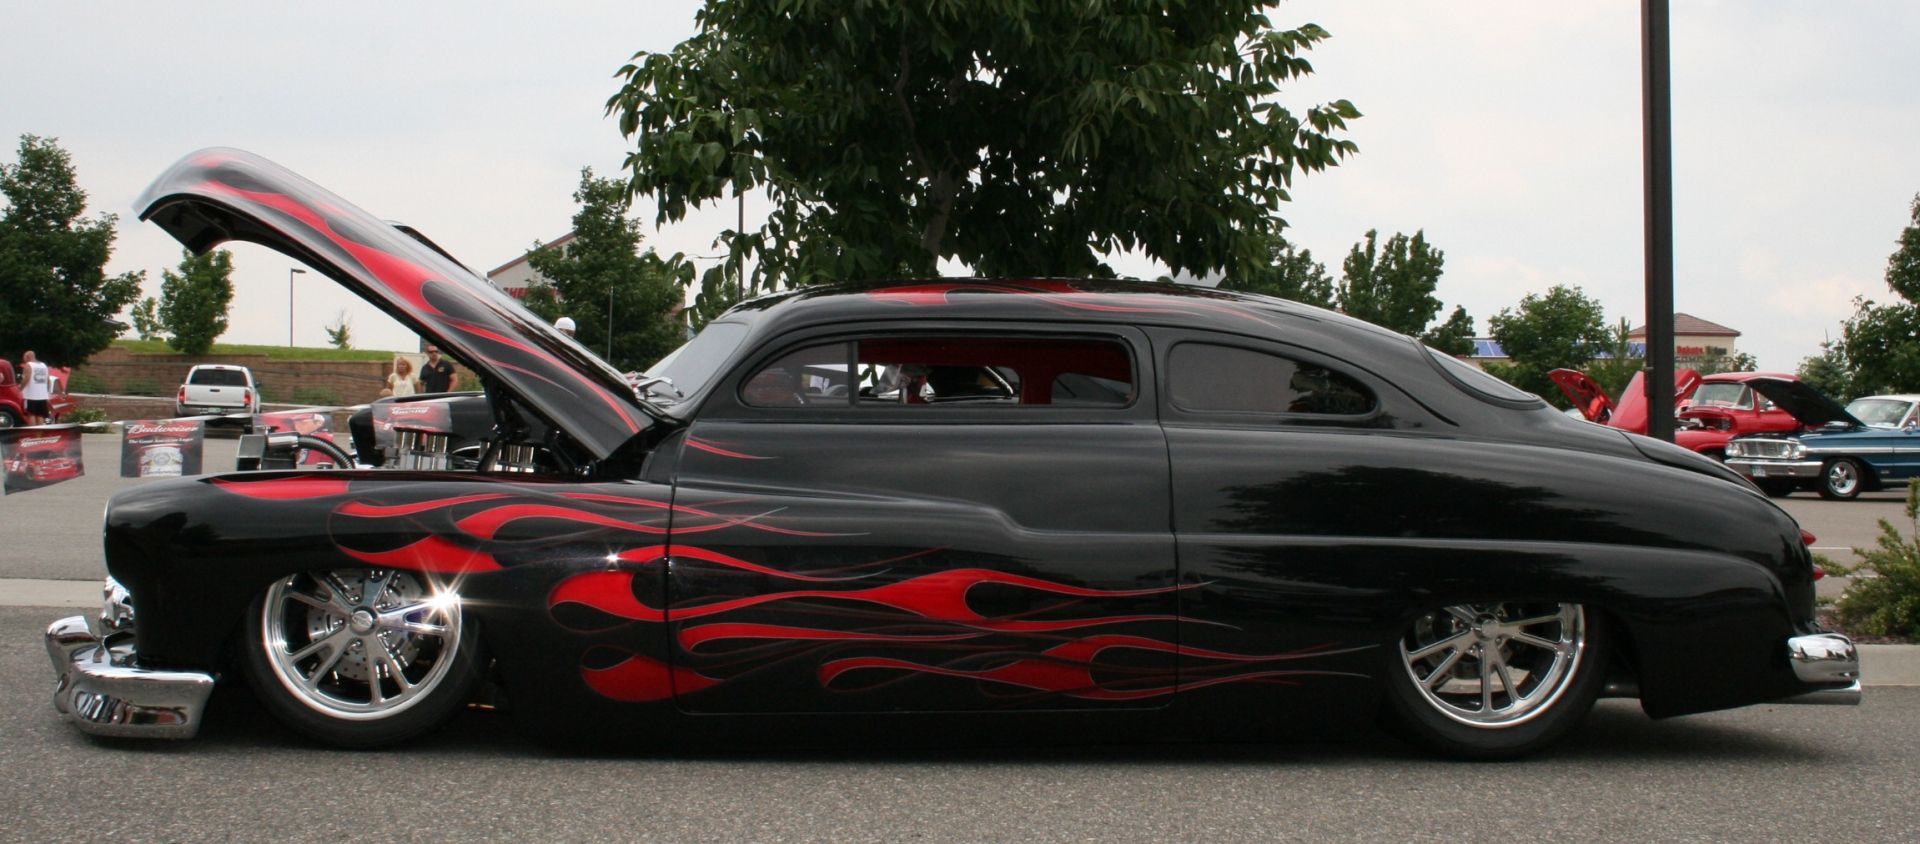 Used Car Values: Mercury Lead Sled (black with flames) | Cars ...